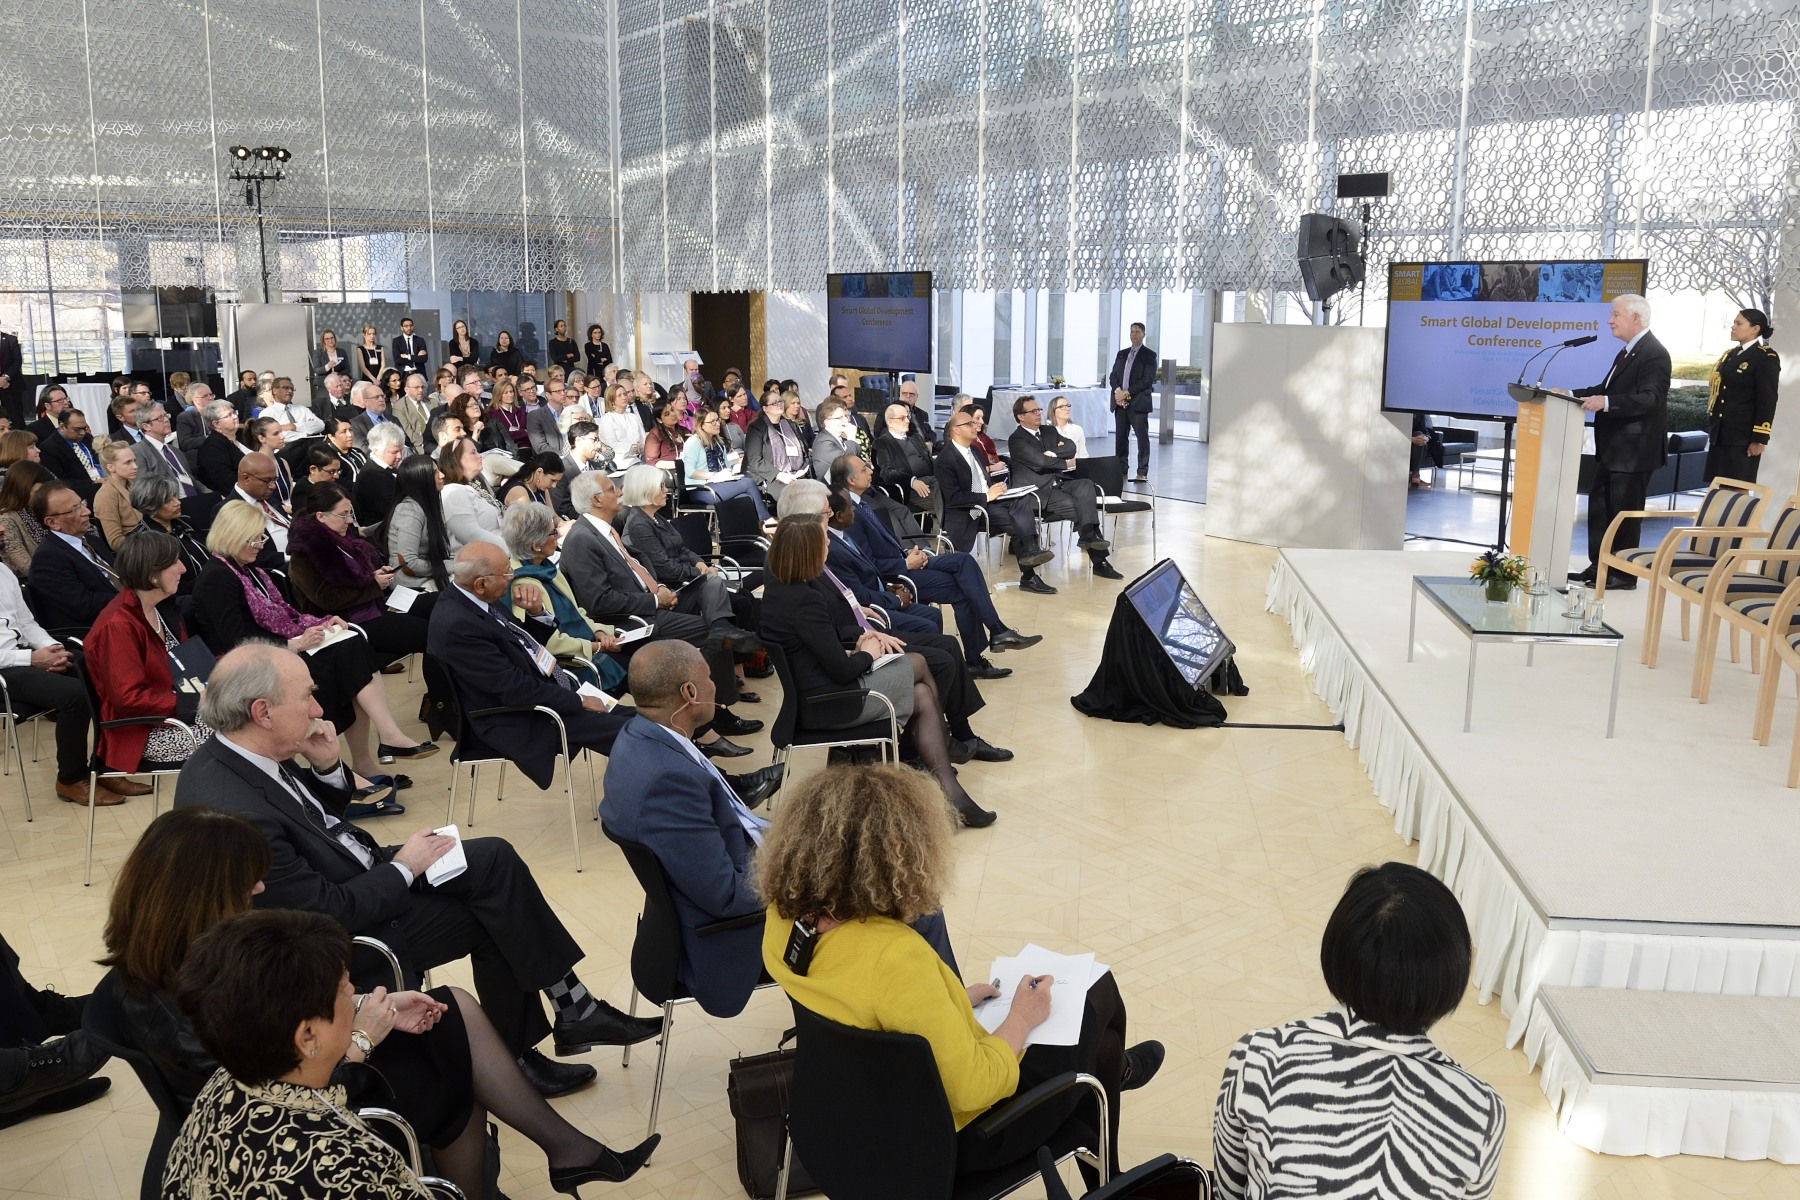 The Smart Global Development conference, convened by Aga Khan Foundation Canada, Academics Without Borders, and the International Development Research Centre, explored the role of higher education in advancing sustainable development goals.